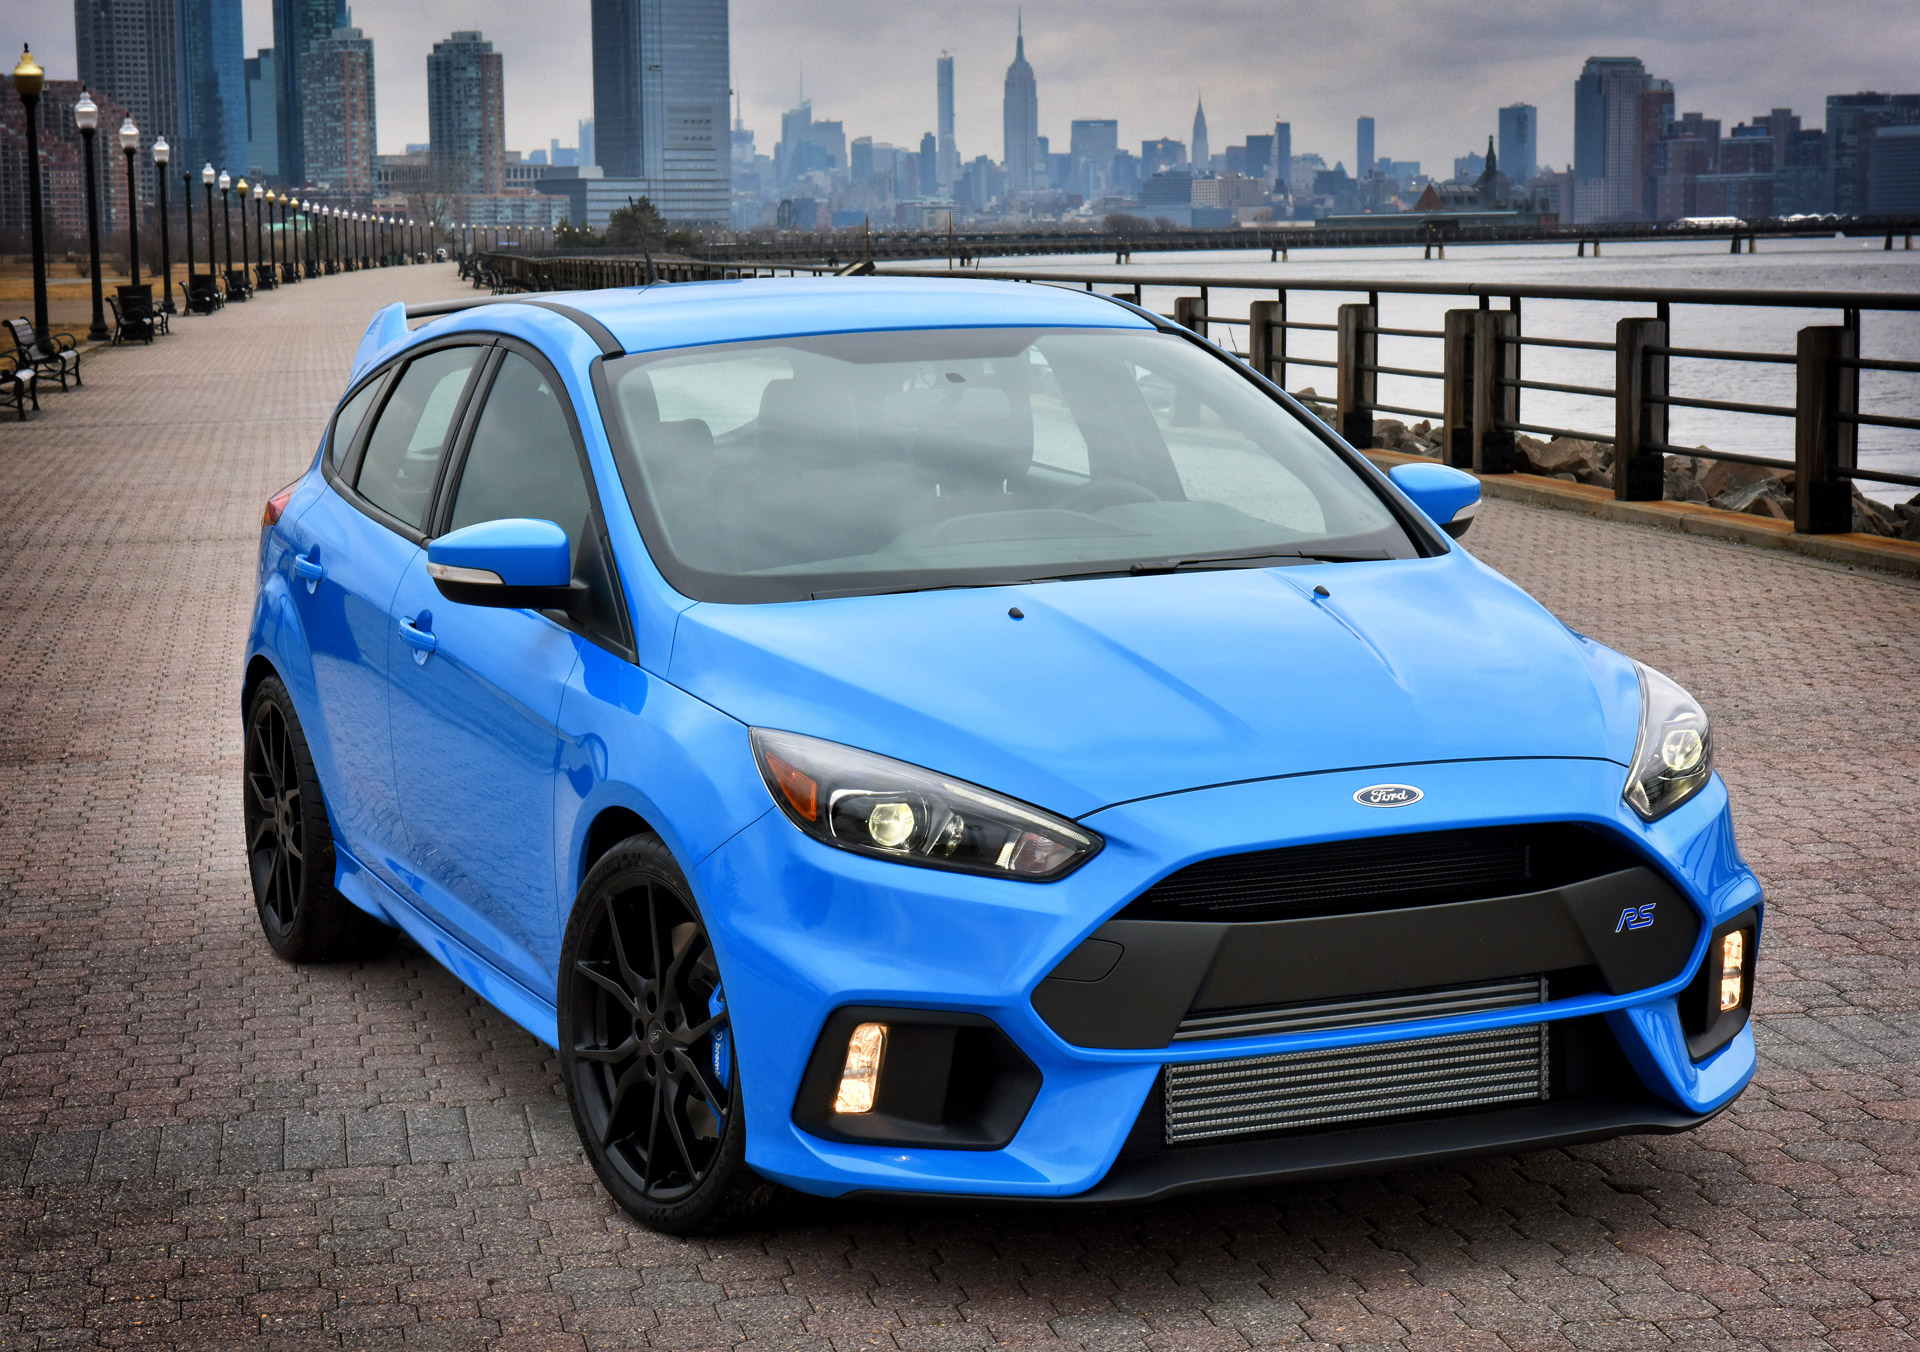 all rs focus australia images ford australian review gizmodo price